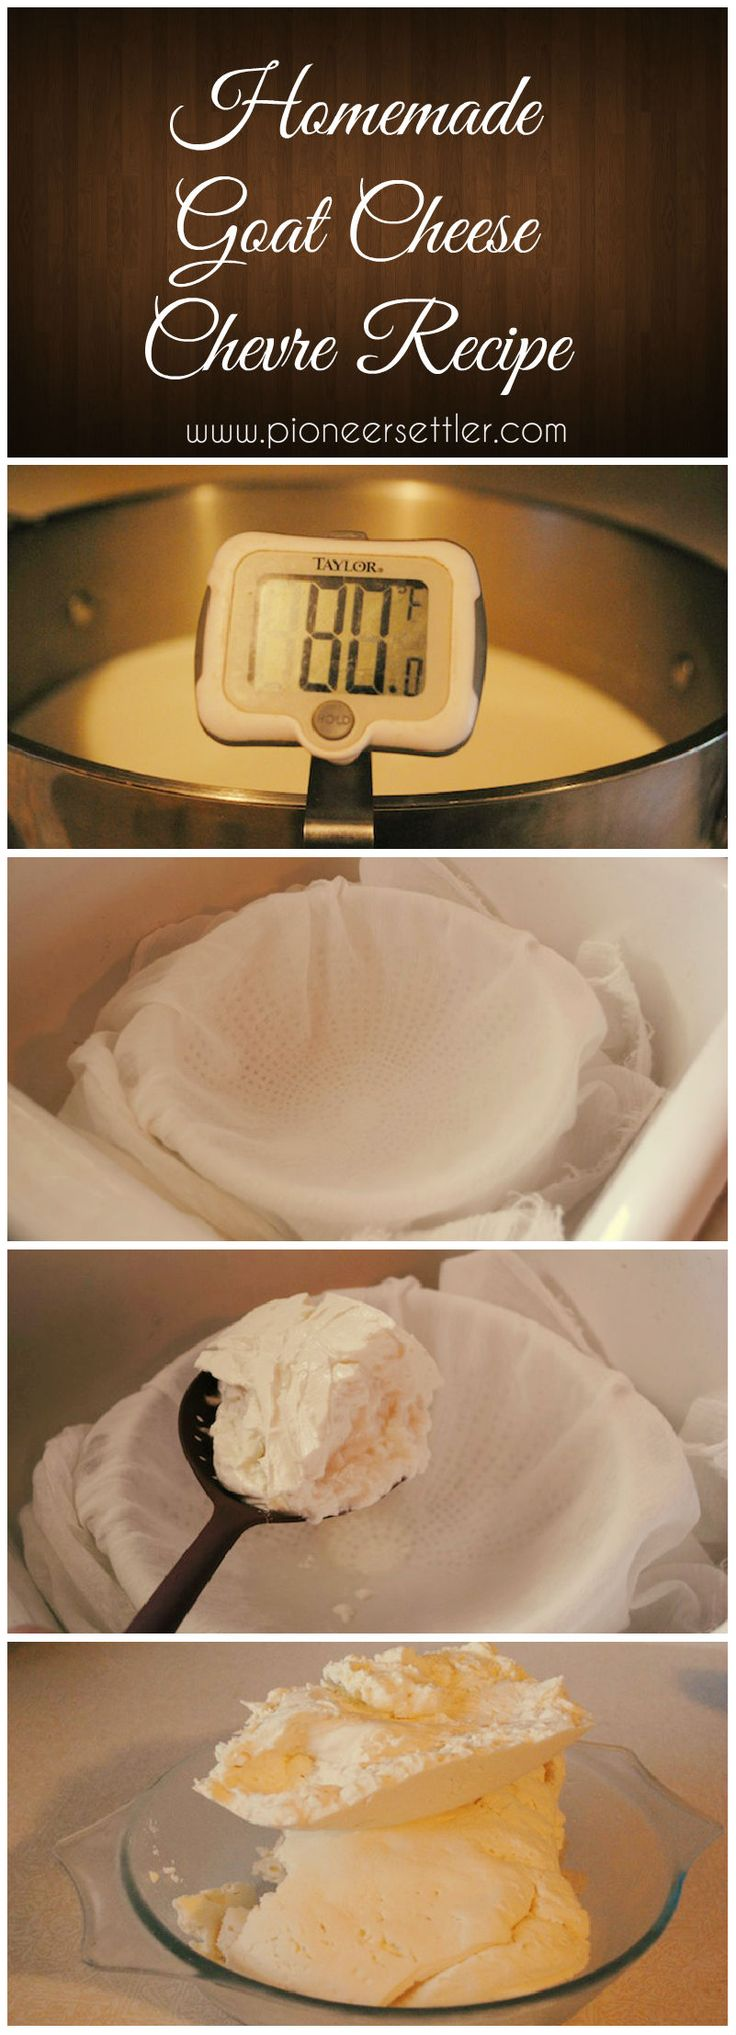 Homemade Goat Cheese : Chevre Recipe | Save money and make your own cheesy recipe at home using Goat's milk. #pioneersettler